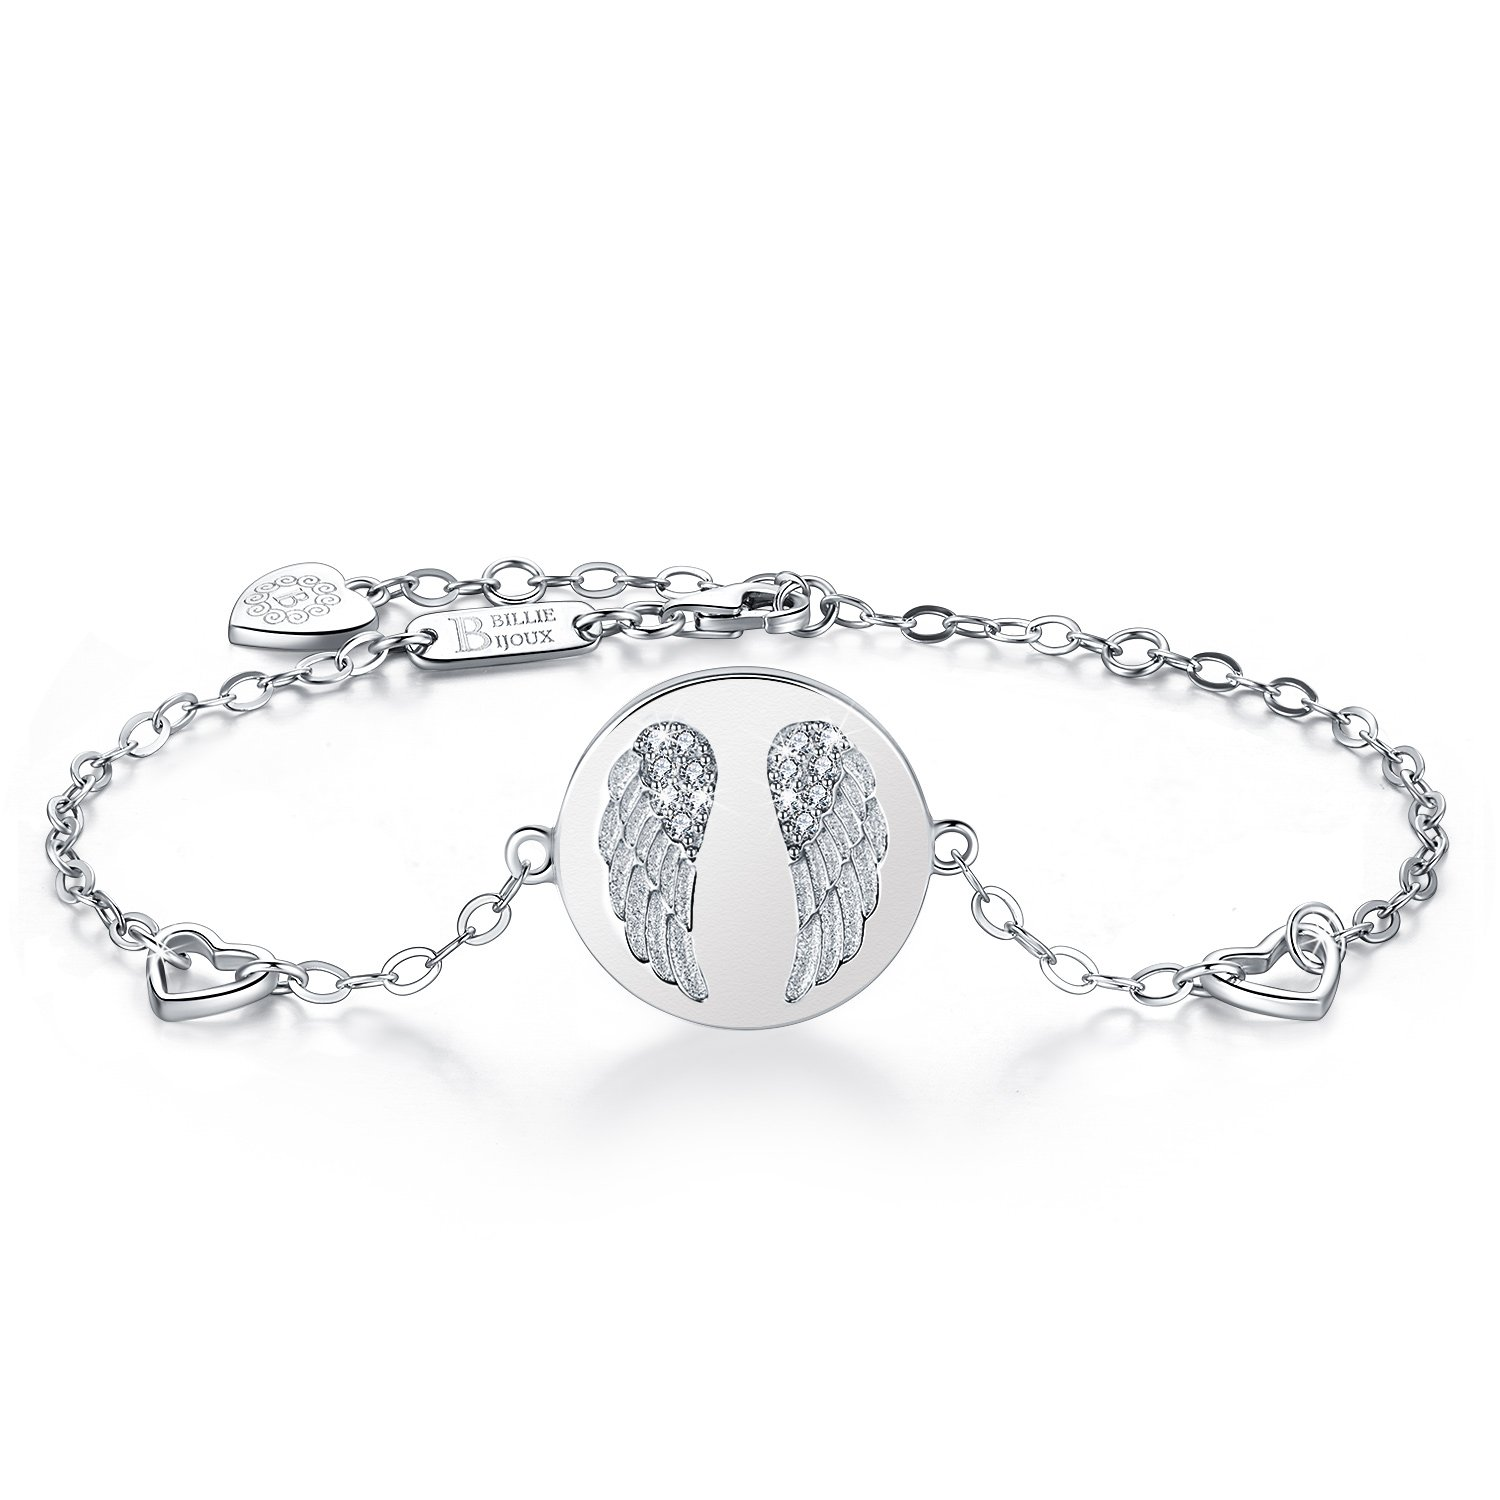 Billie Bijoux 925 Sterling Silver Women Angel Wings Charm Adjustable Bracelet White Gold Plated Best Gift for Graduation, Christmas, Mother's Day and Birthday by Billie Bijoux (Image #1)